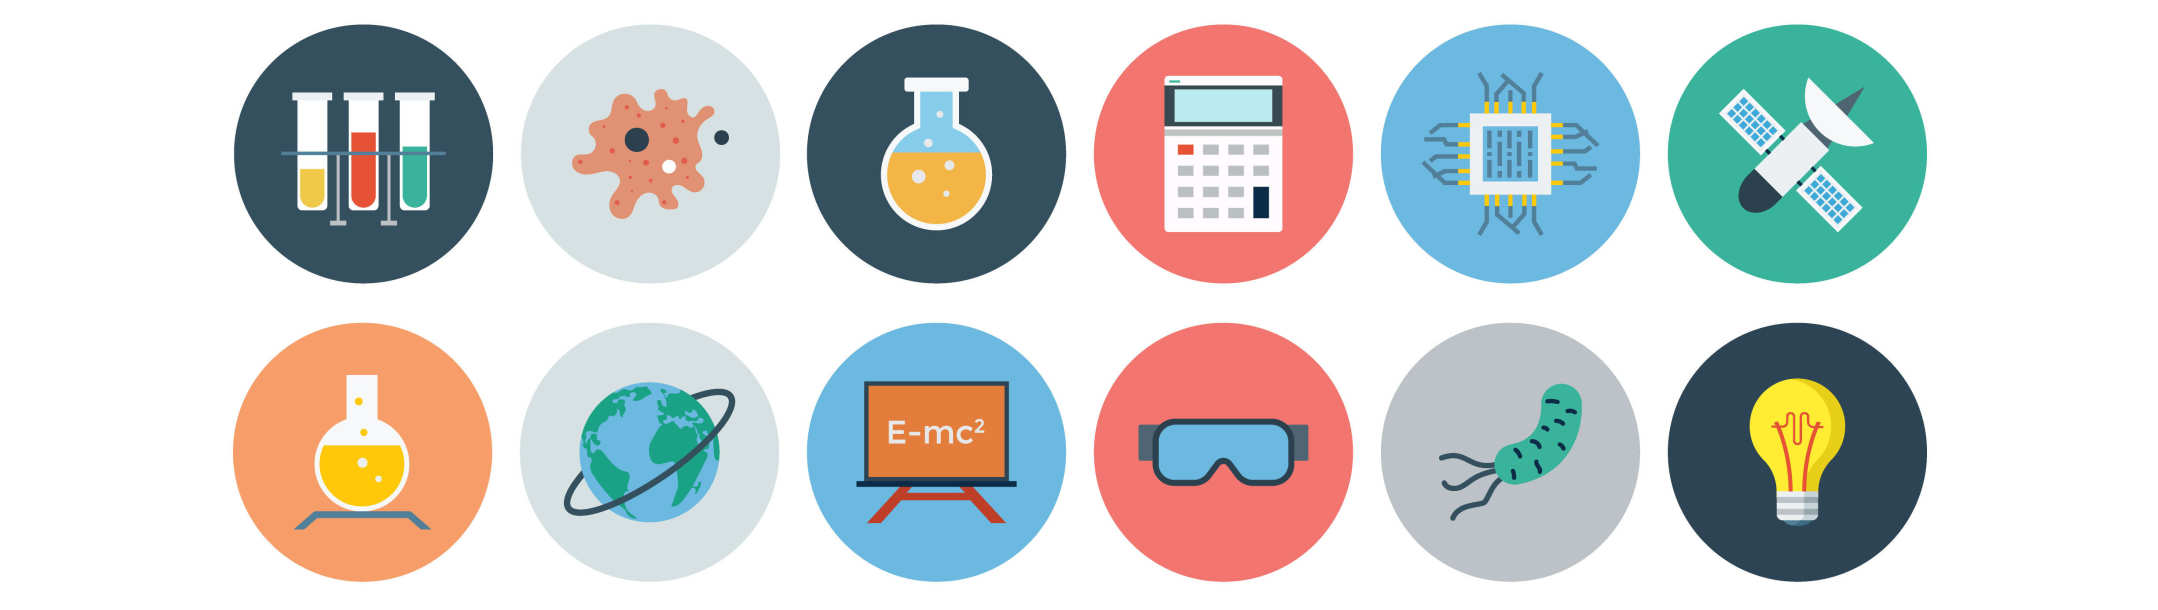 Significance of Scientific Laboratory Devices For Schooling